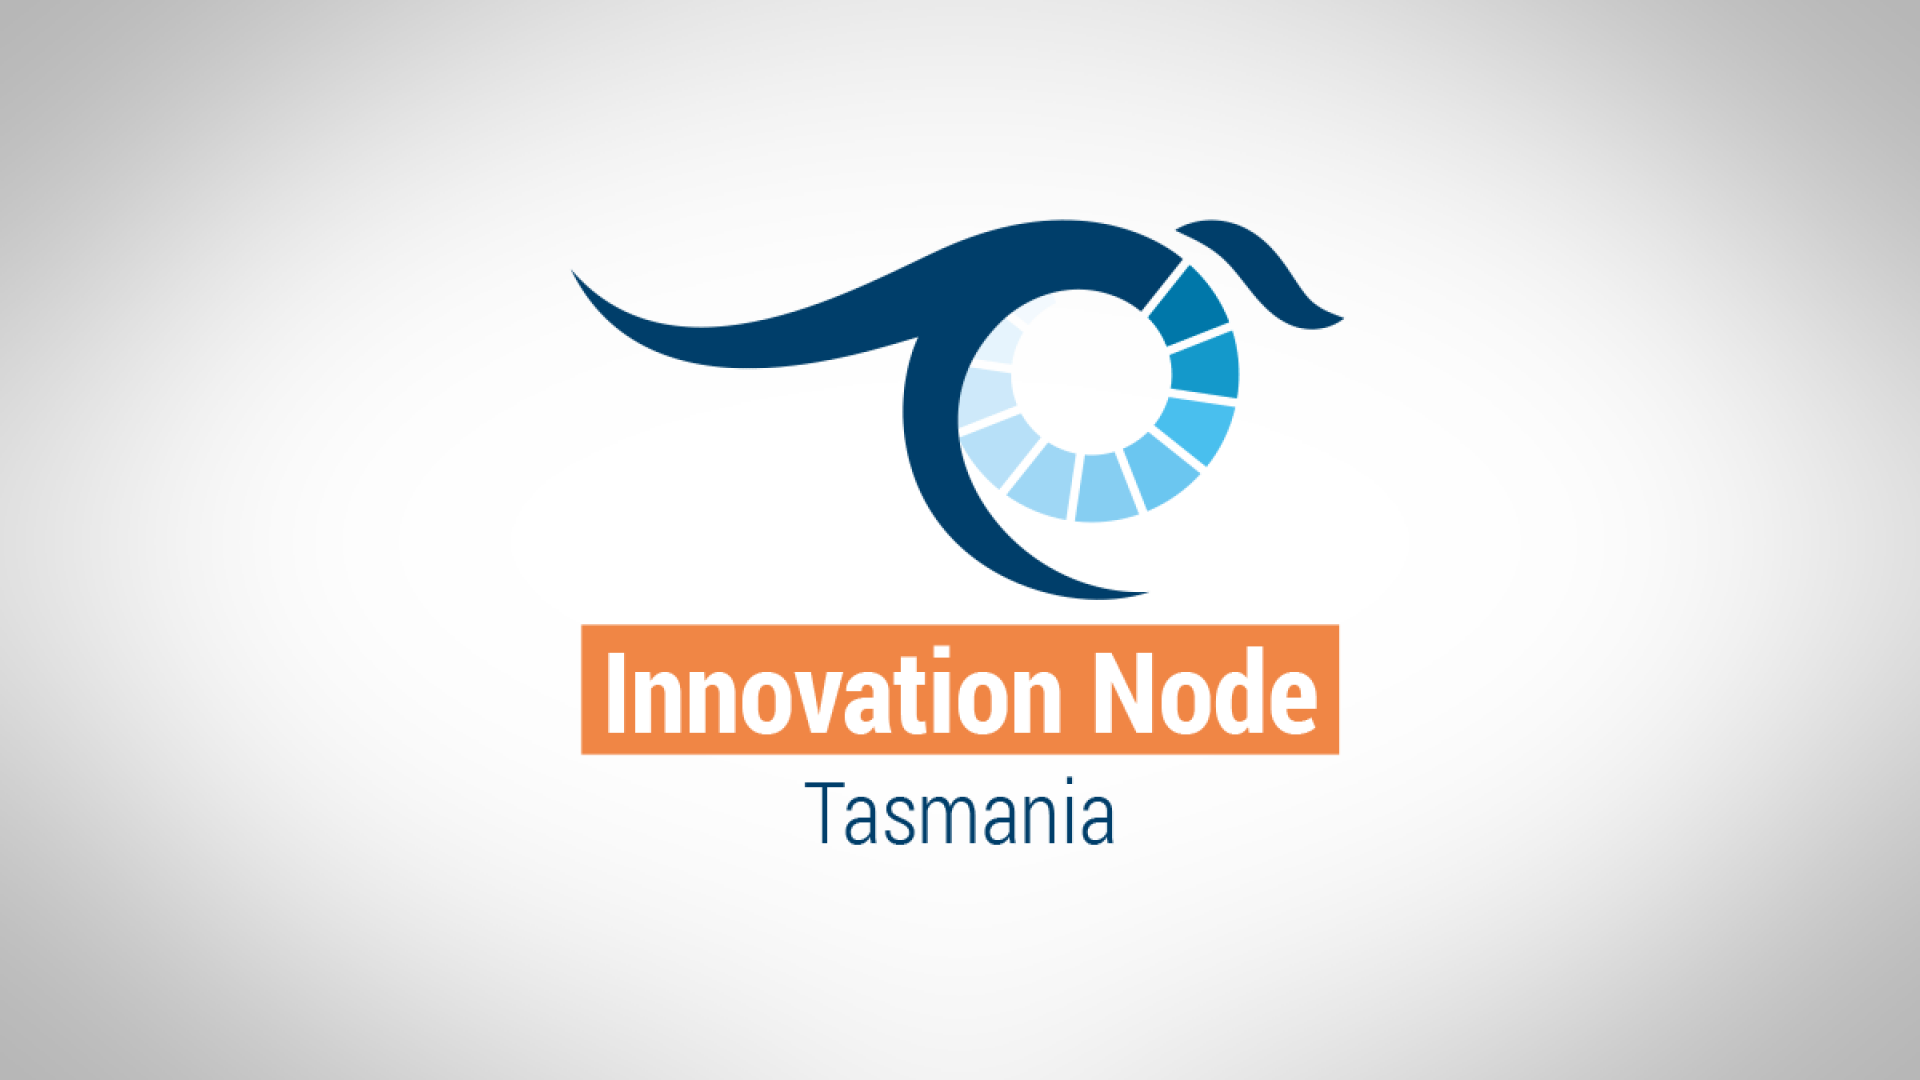 Innovation node Tasmania